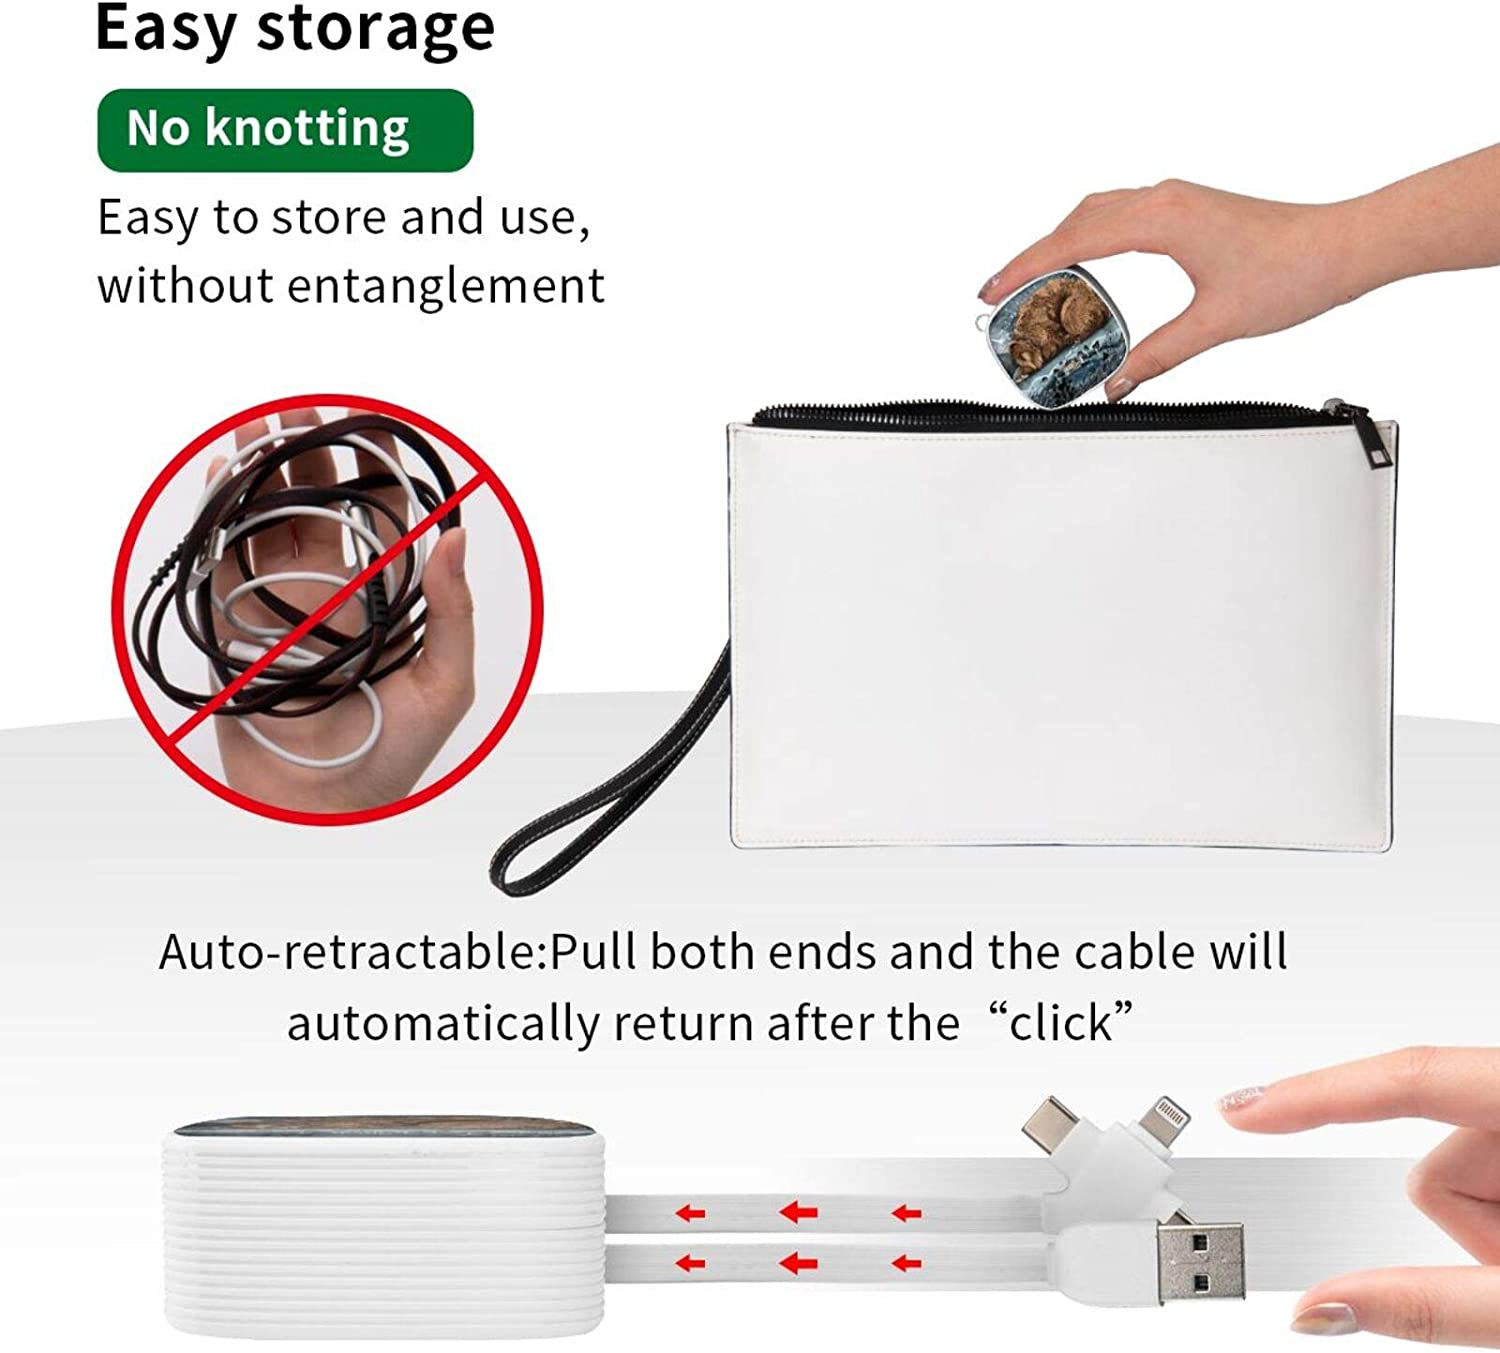 Multi Charging Cable Portable 3 in 1 The Lake House Throw Pillow USB Power Cords for Cell Phone Tablets and More Devices Charging